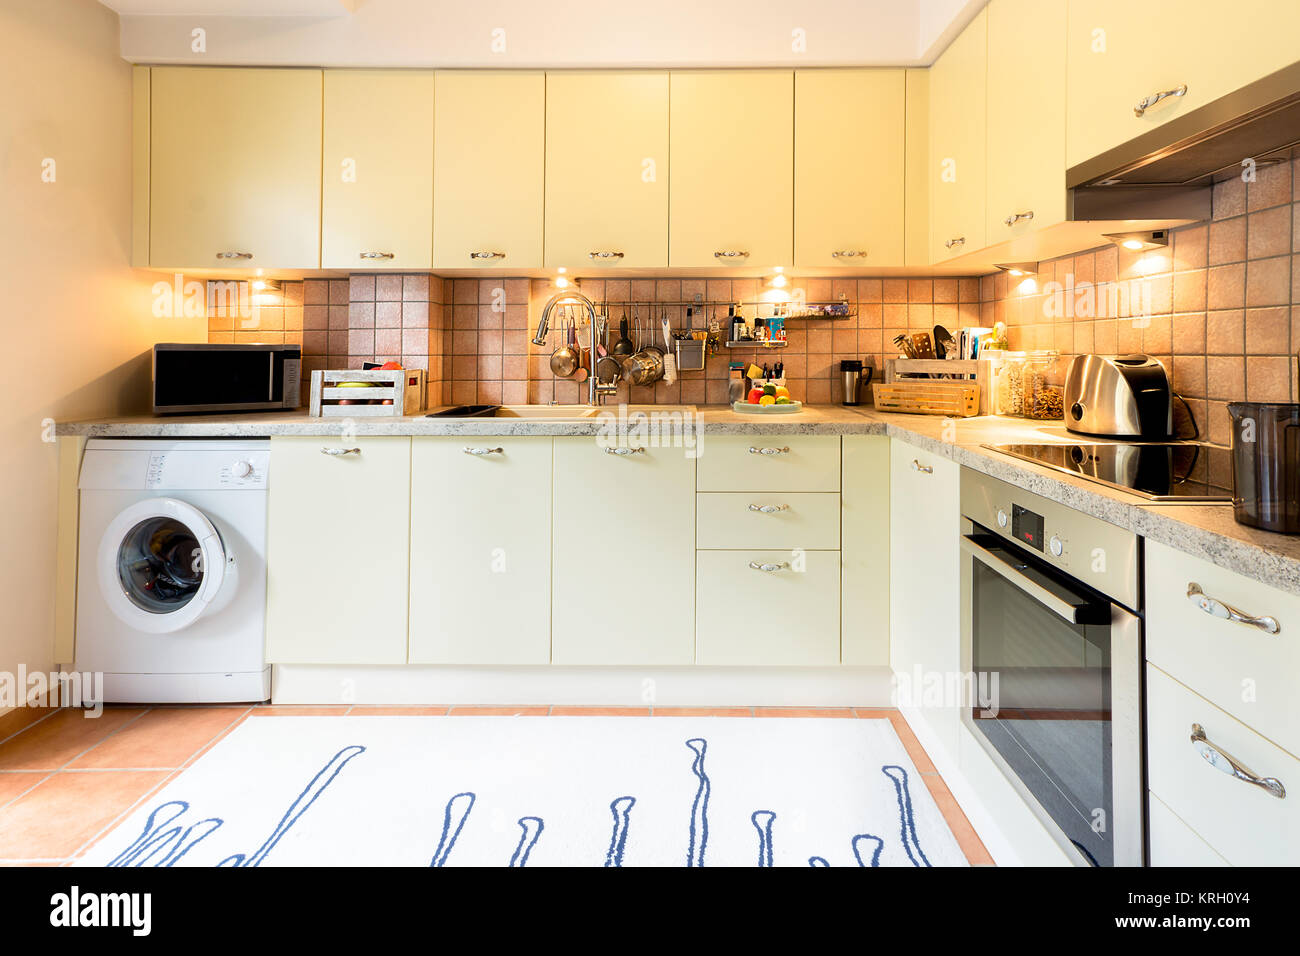 A modern kitchen with laminated cupboards and cabinets, washing machine, cooker, microwave and kitchenware. - Stock Image